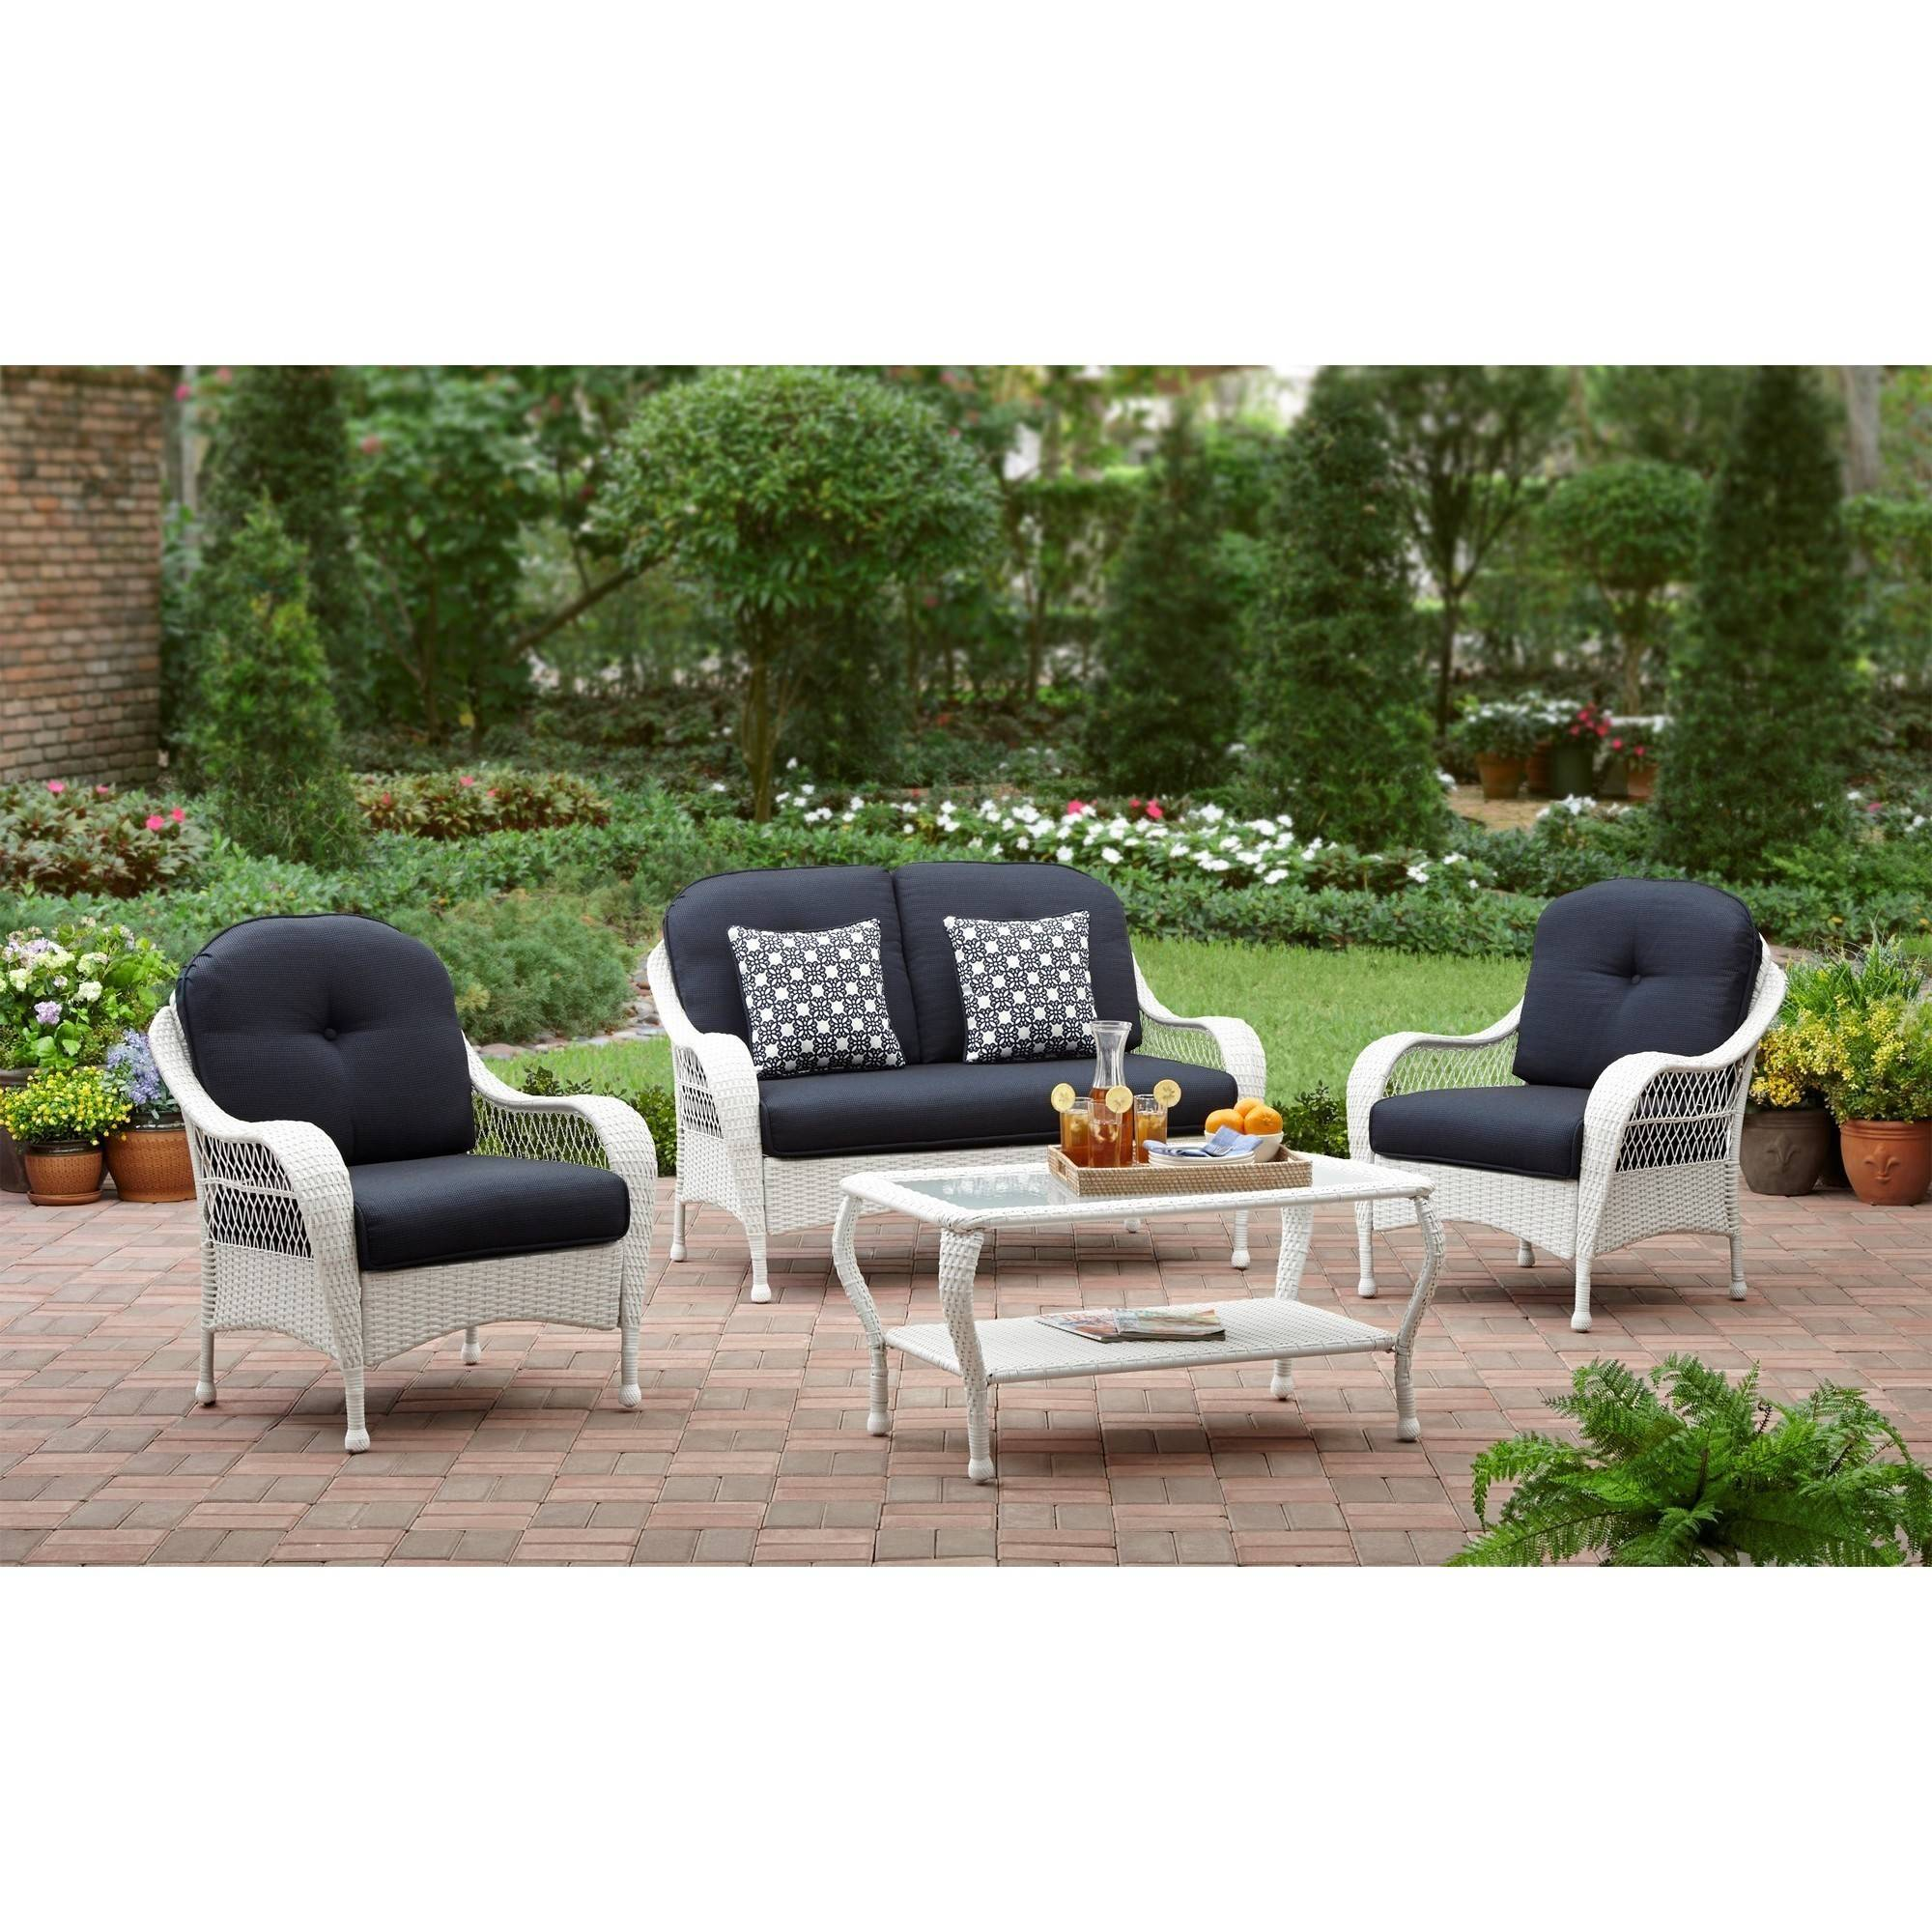 White Outdoor Patio Furniture.Better Homes Gardens Azalea Ridge Outdoor Patio Conversation Set